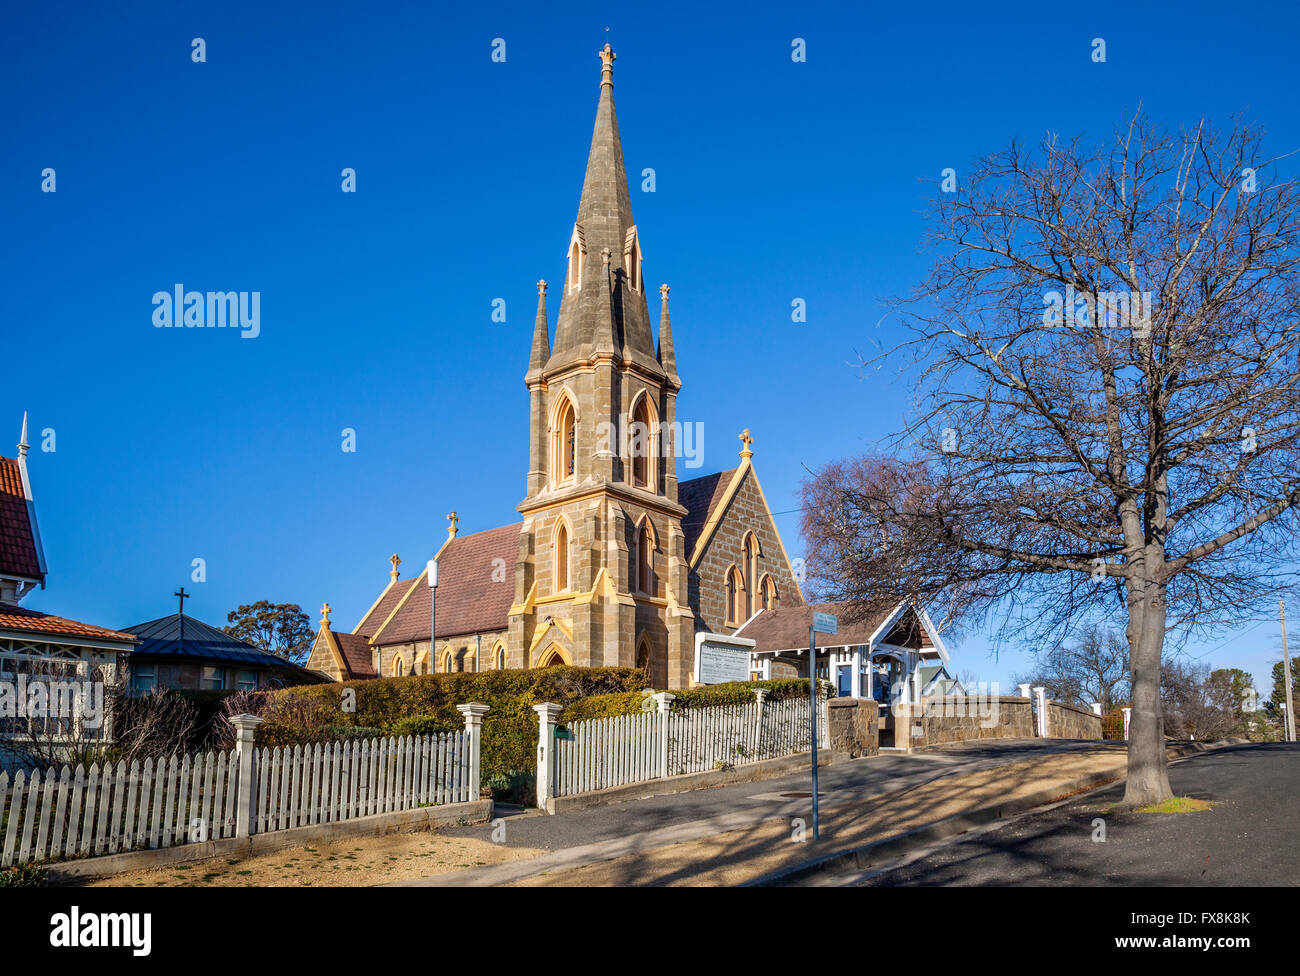 Australia, New South Wales, Monaro region, Cooma, view of St. Paul's Anglican Church - Stock Image